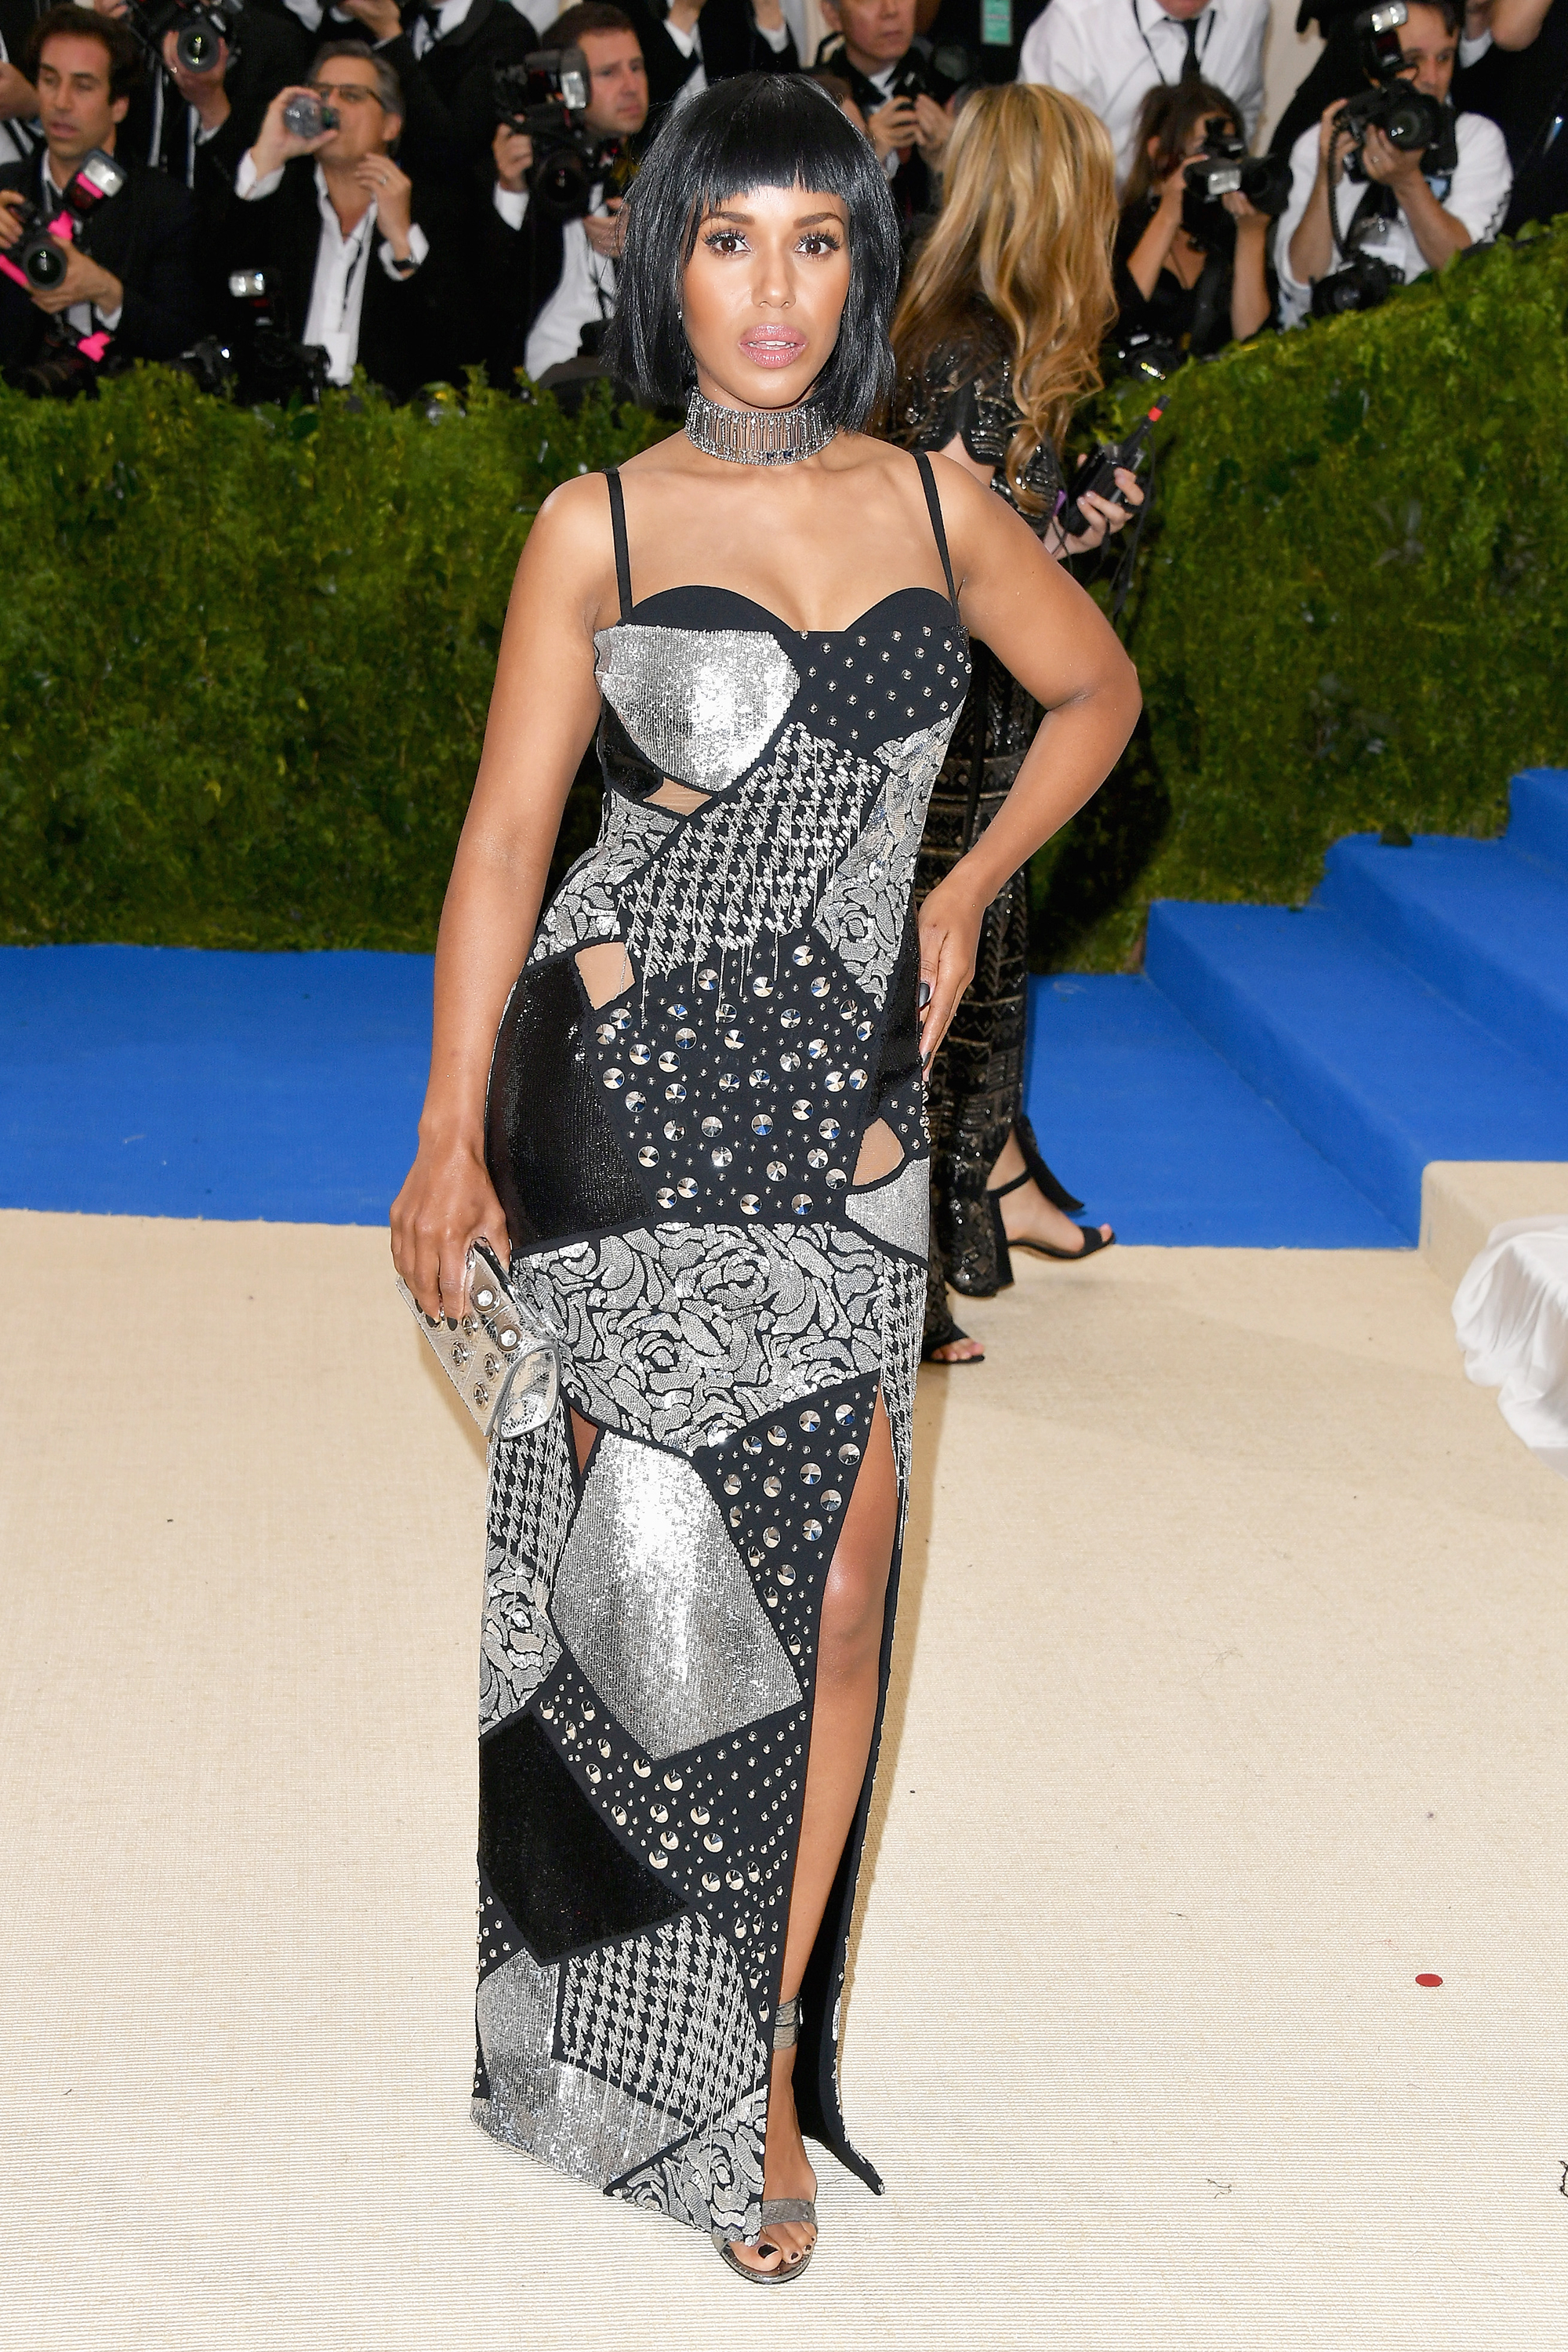 Kerry Washington attends The Metropolitan Museum of Art's Costume Institute benefit gala celebrating the opening of the Rei Kawakubo/Comme des Garçons: Art of the In-Between exhibition in New York City, on May 1, 2017.